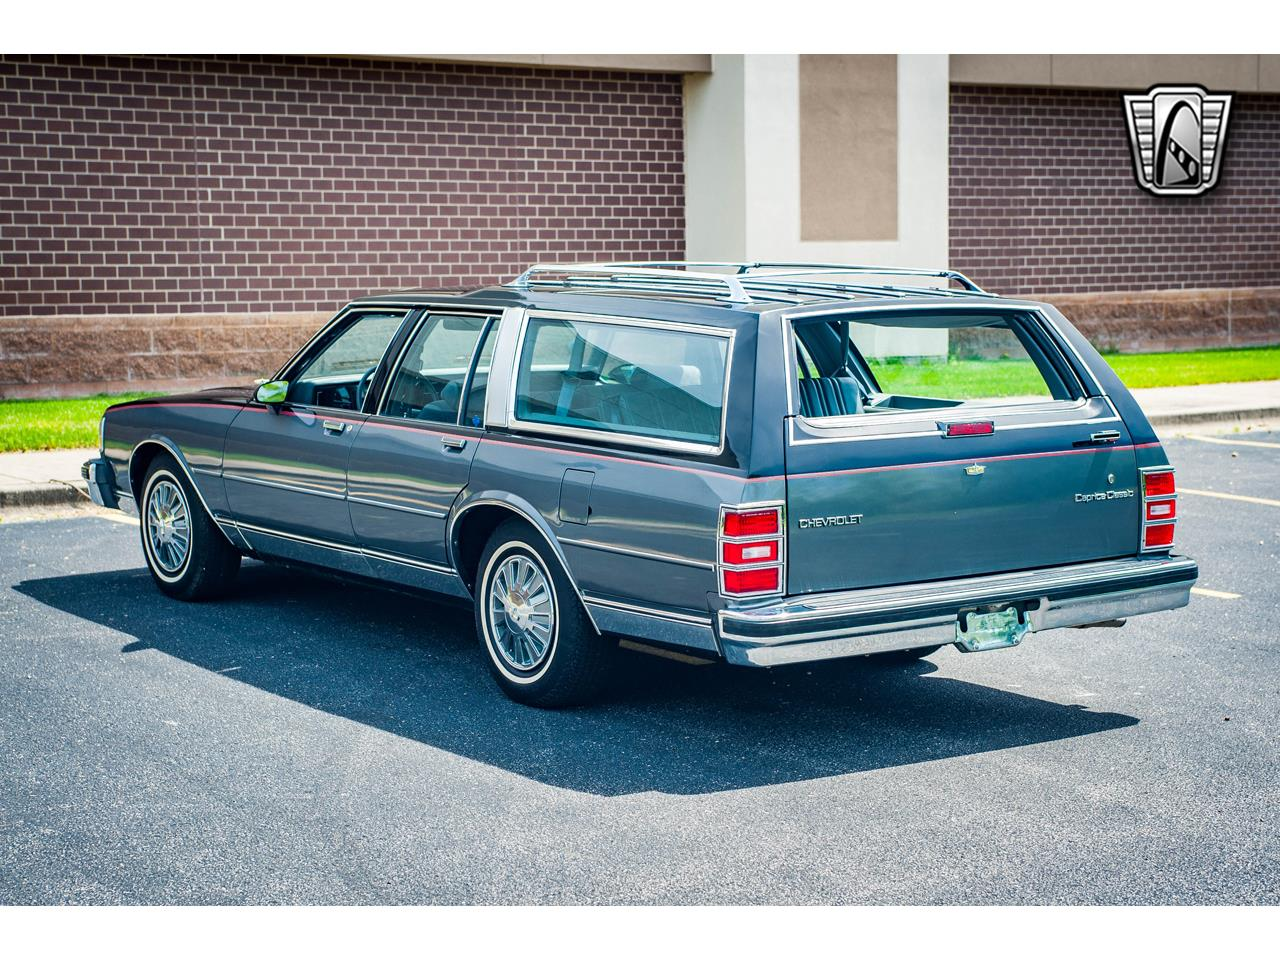 Large Picture of '89 Caprice Offered by Gateway Classic Cars - St. Louis - QB9K